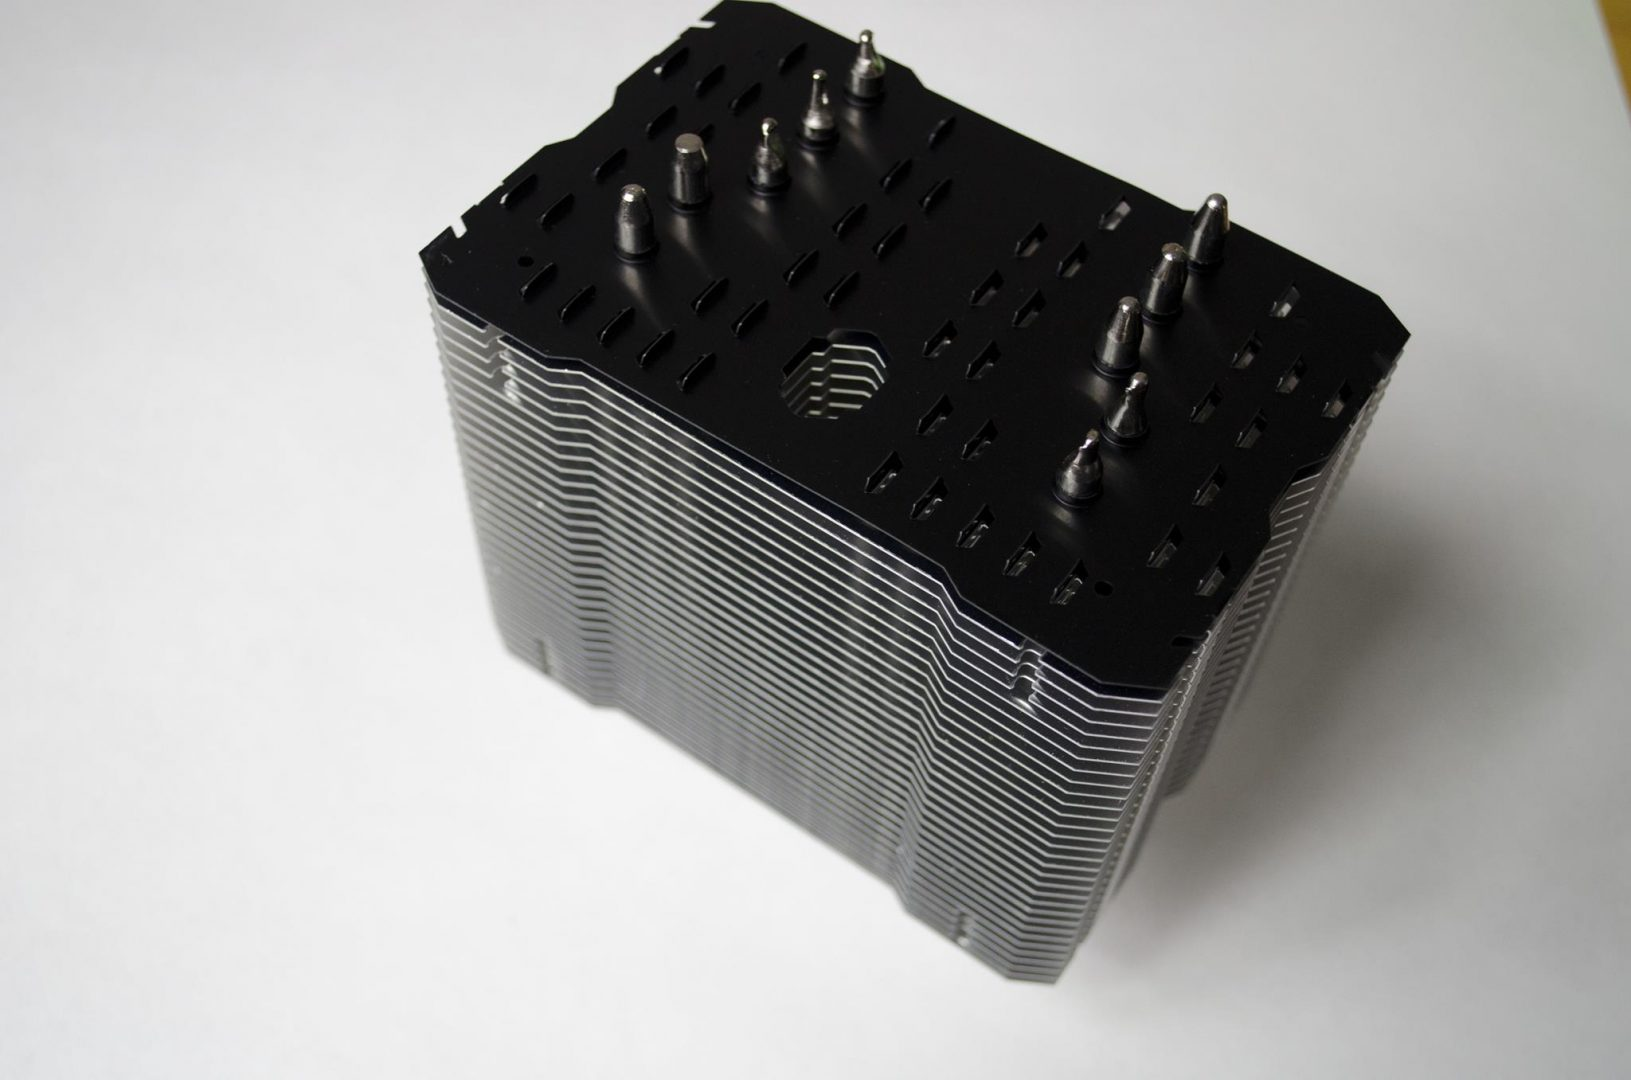 thermalright-macho-120-sbm-cpu-cooler-review-_6